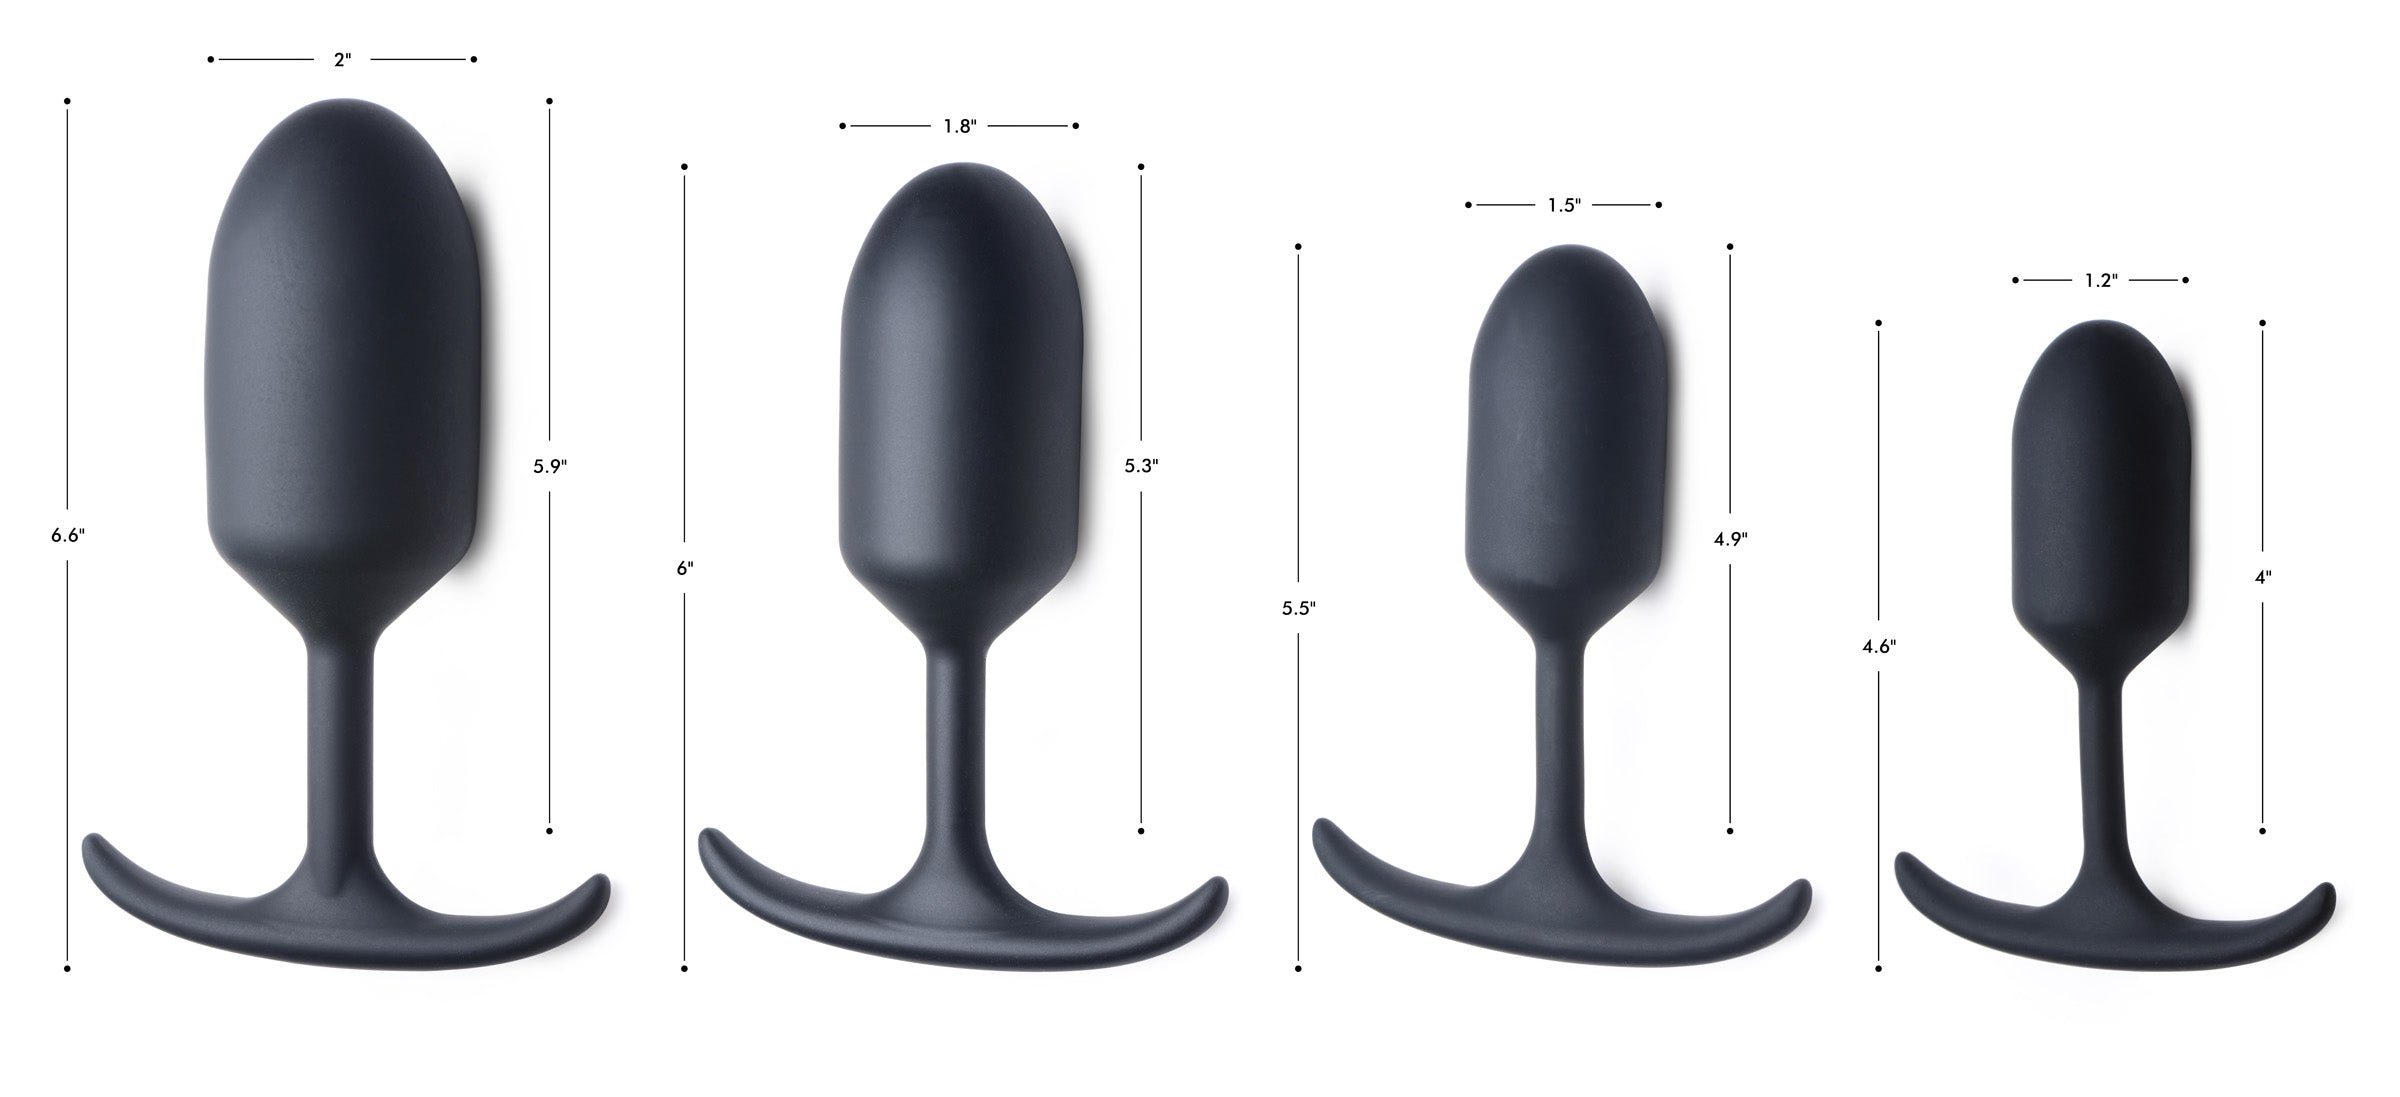 Premium Silicone Weighted Anal Plug - Small